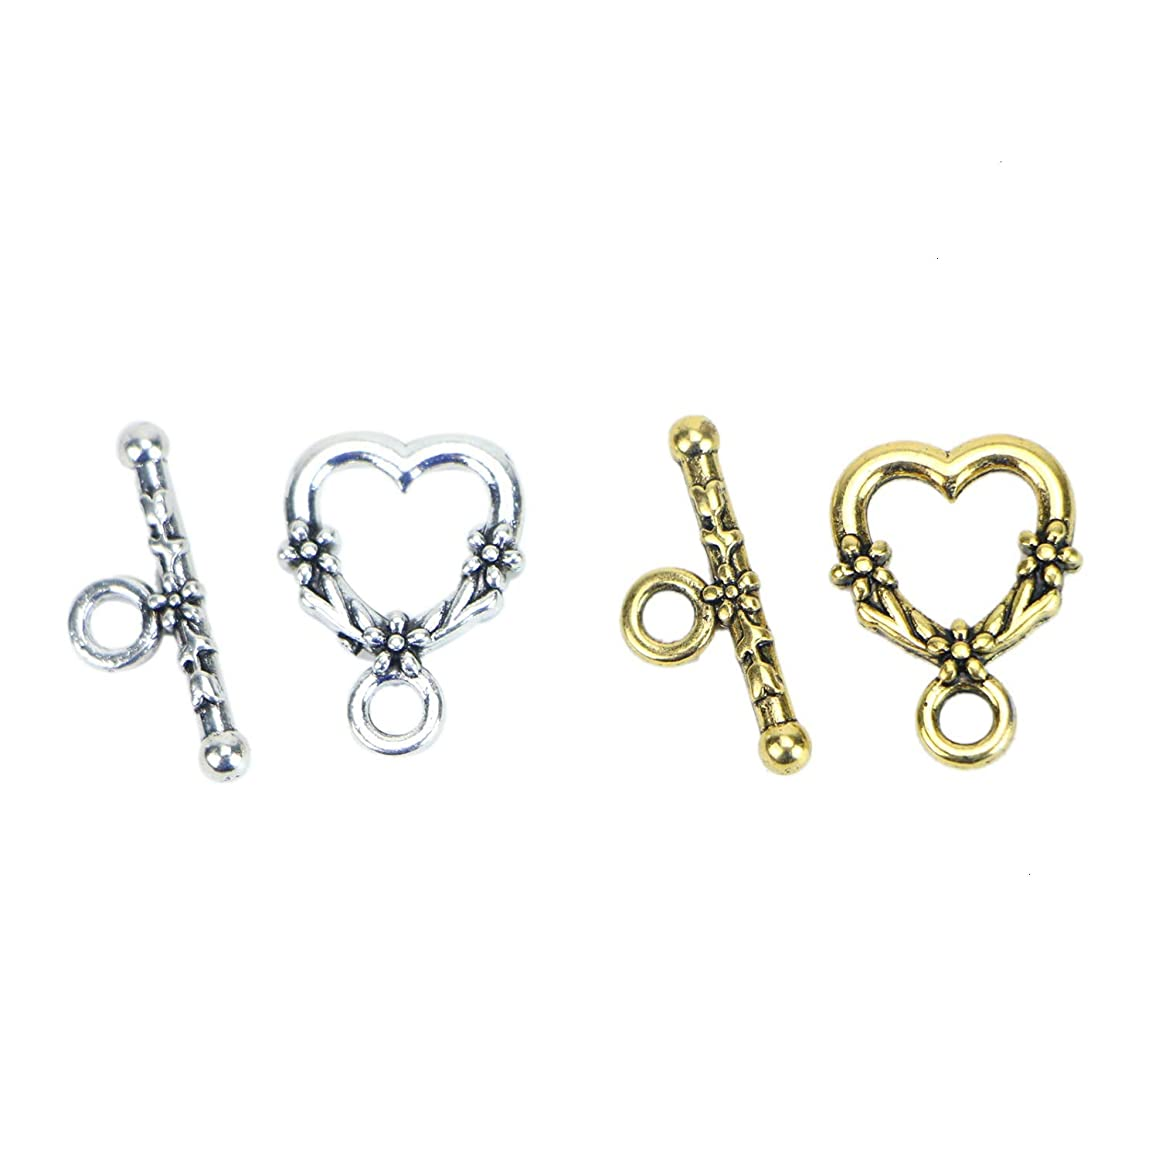 Monrocco 40 Sets Alloy Heart Toggle & TBar Clasps DIY Jewelry Making Bracelets (Antique Silver & Antique Golden)